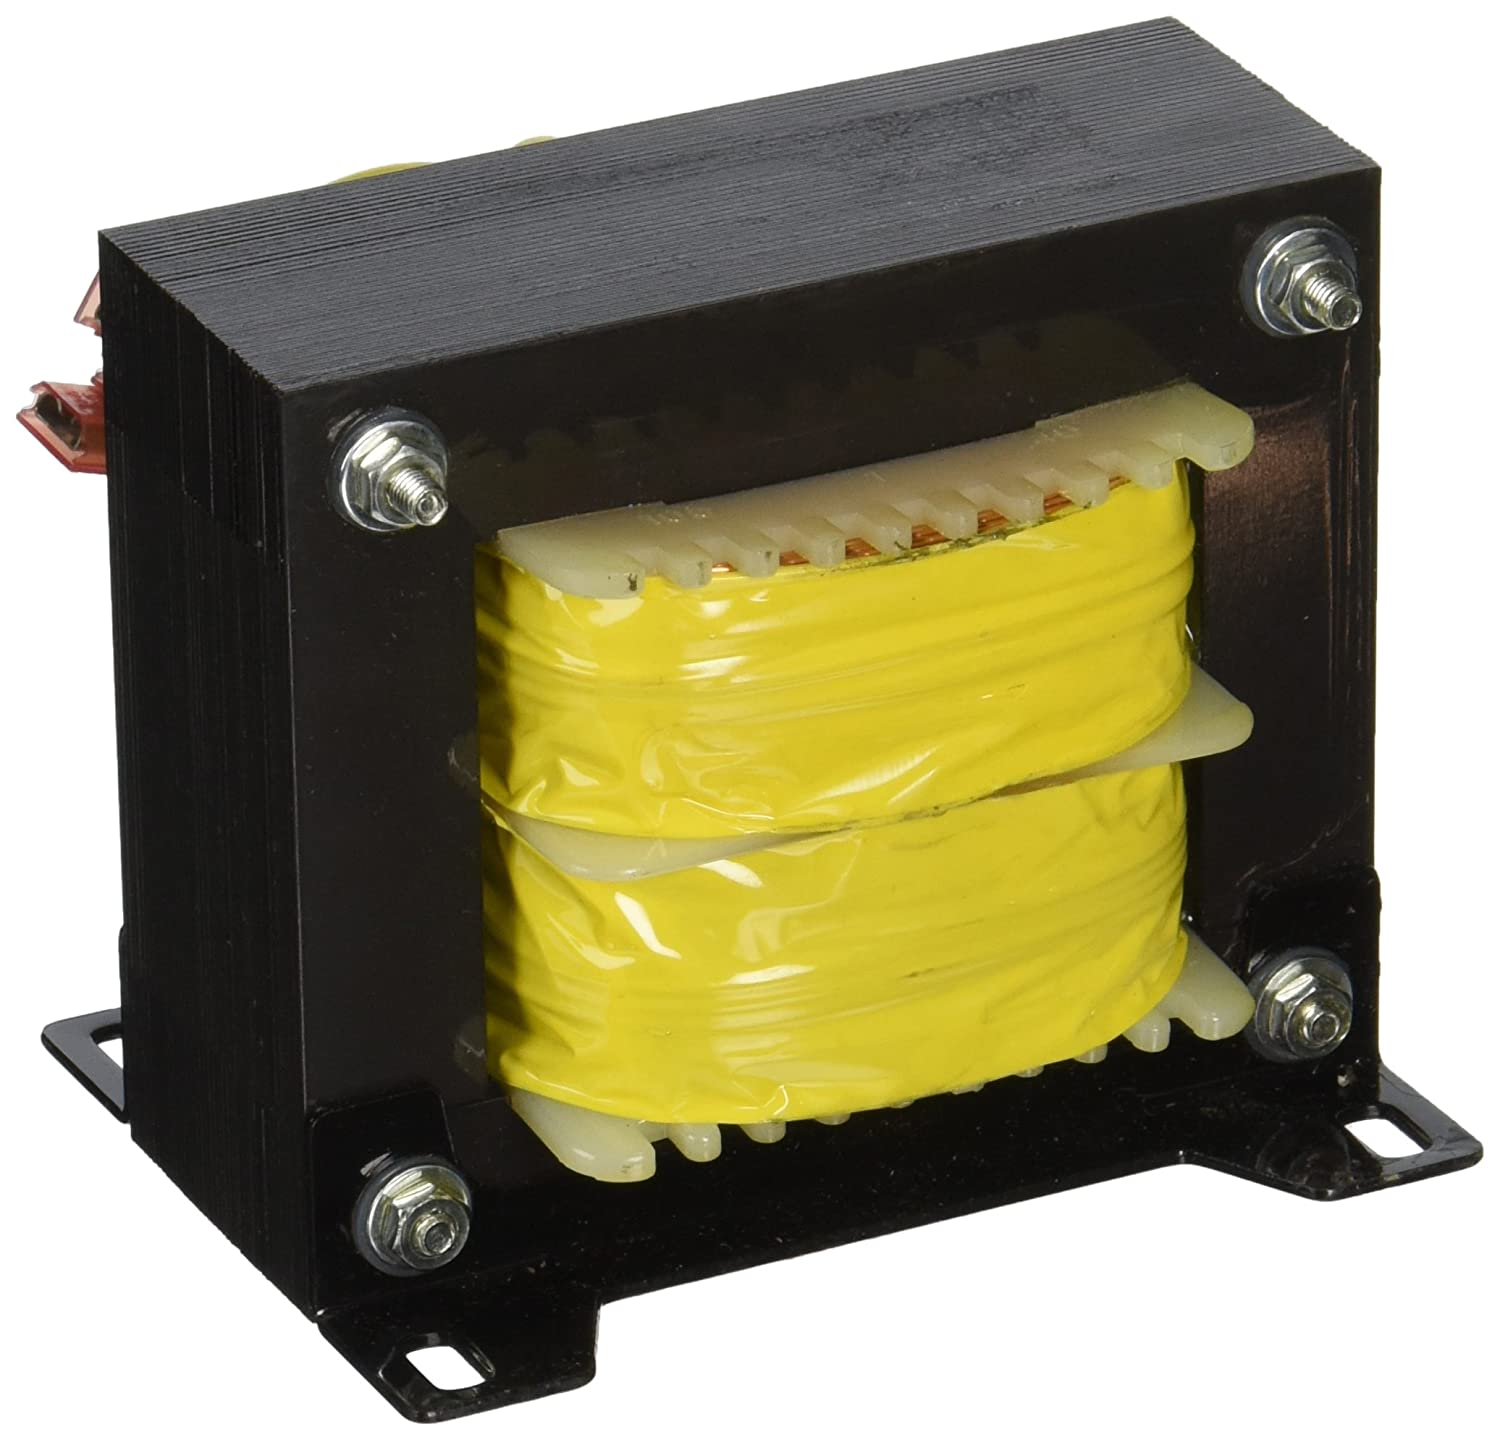 Hayward GLX-XFMR Transformer Replacement for Select Hayward Goldline on